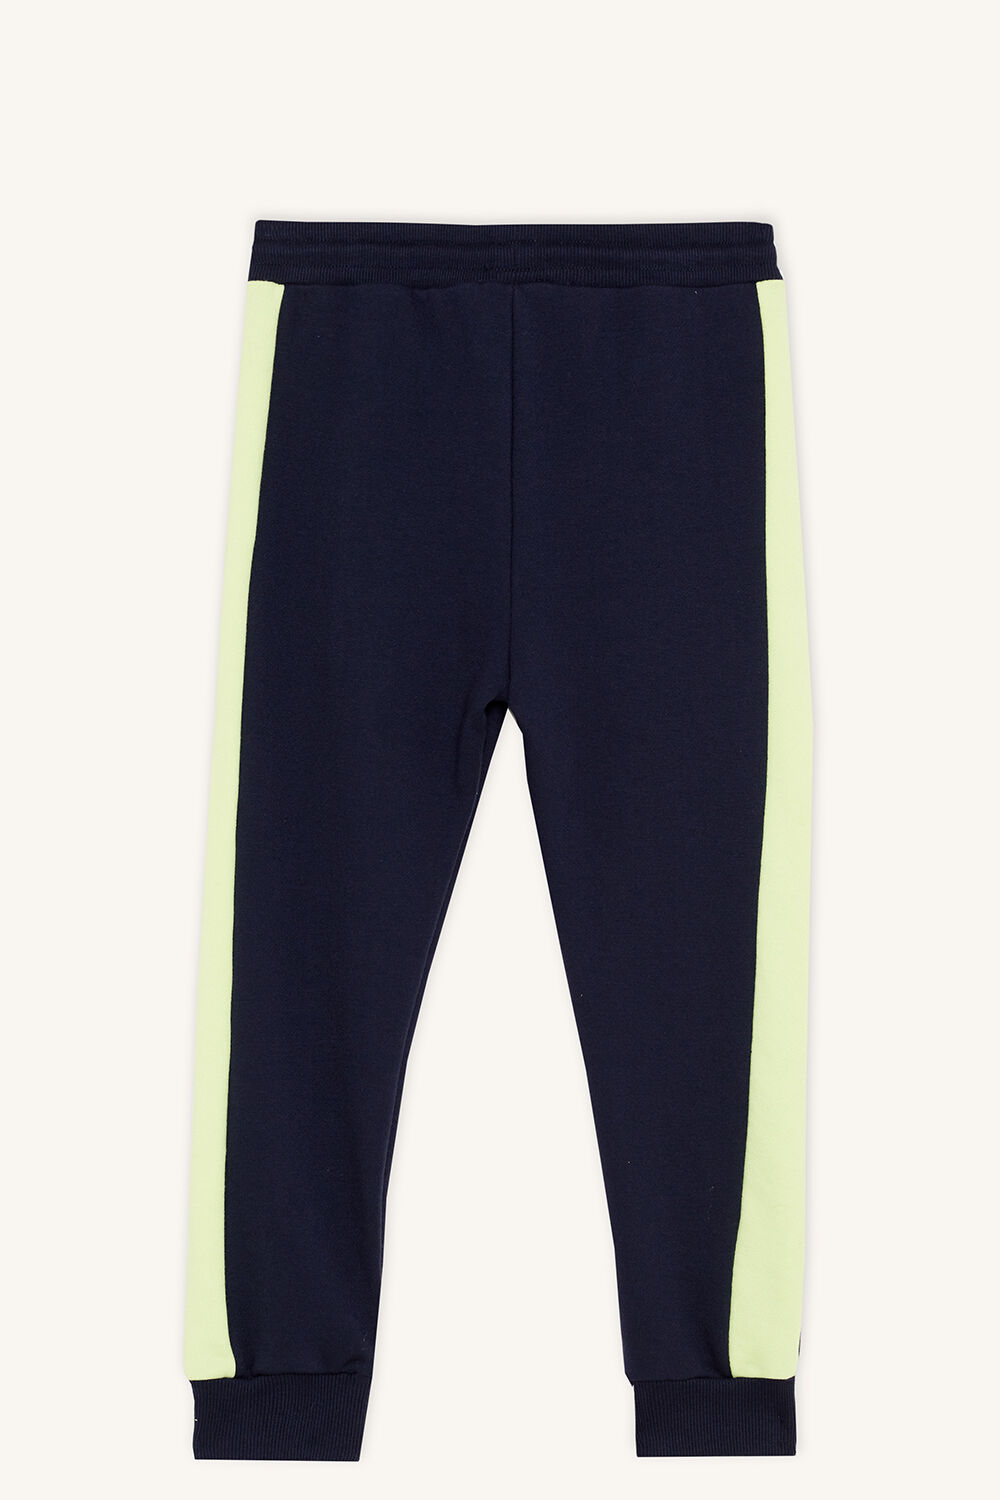 FIERCE TRACKIE PANT in colour BLACK IRIS